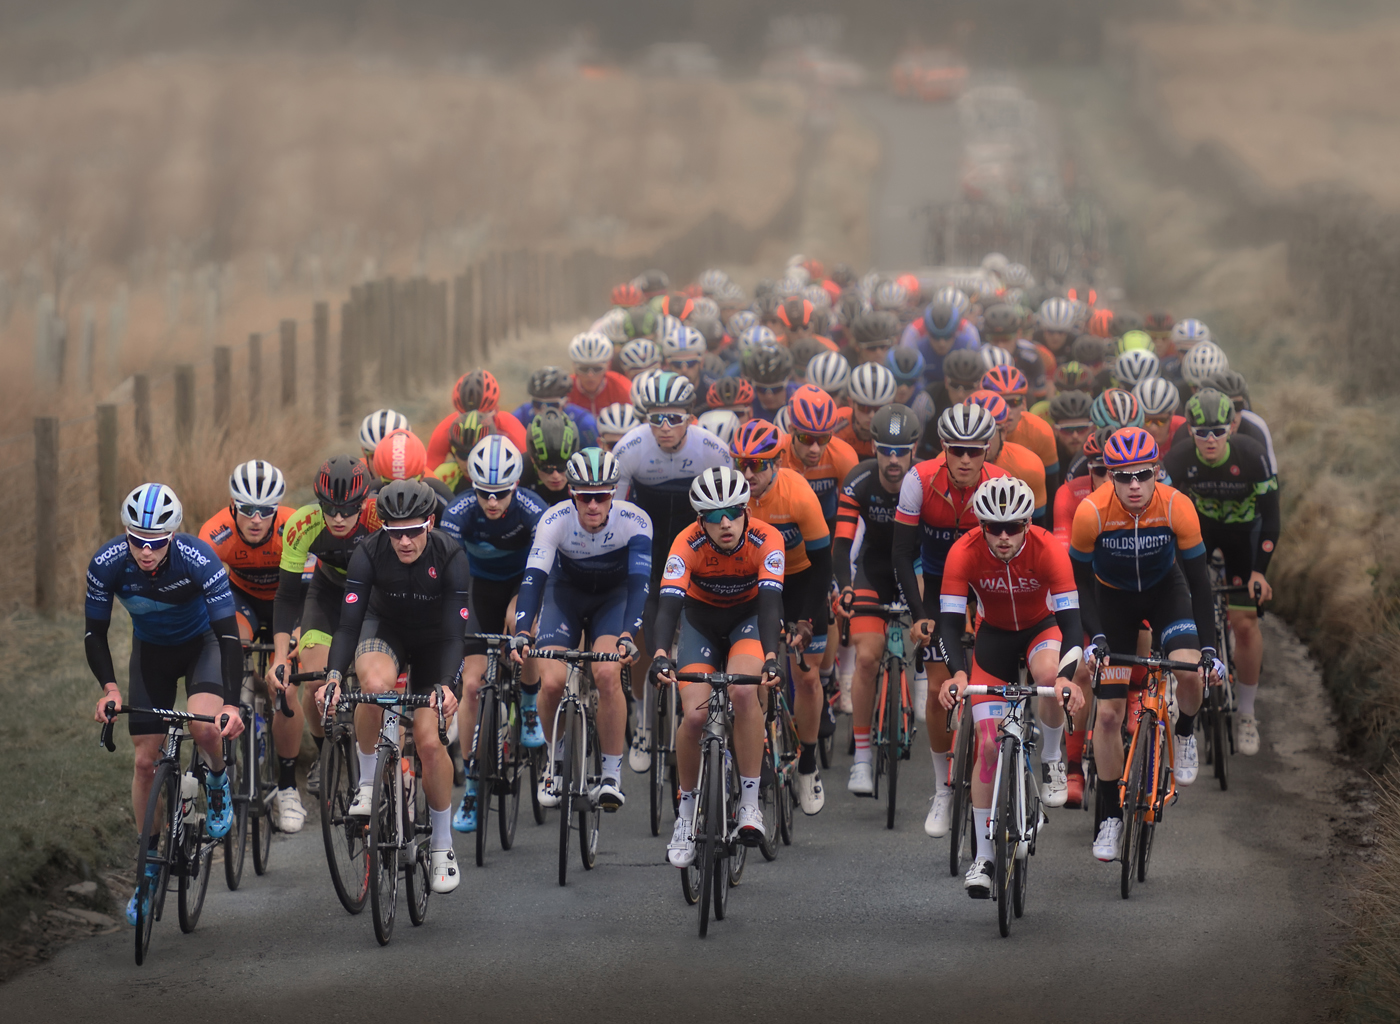 The Chasing Peleton by Mike Williamson